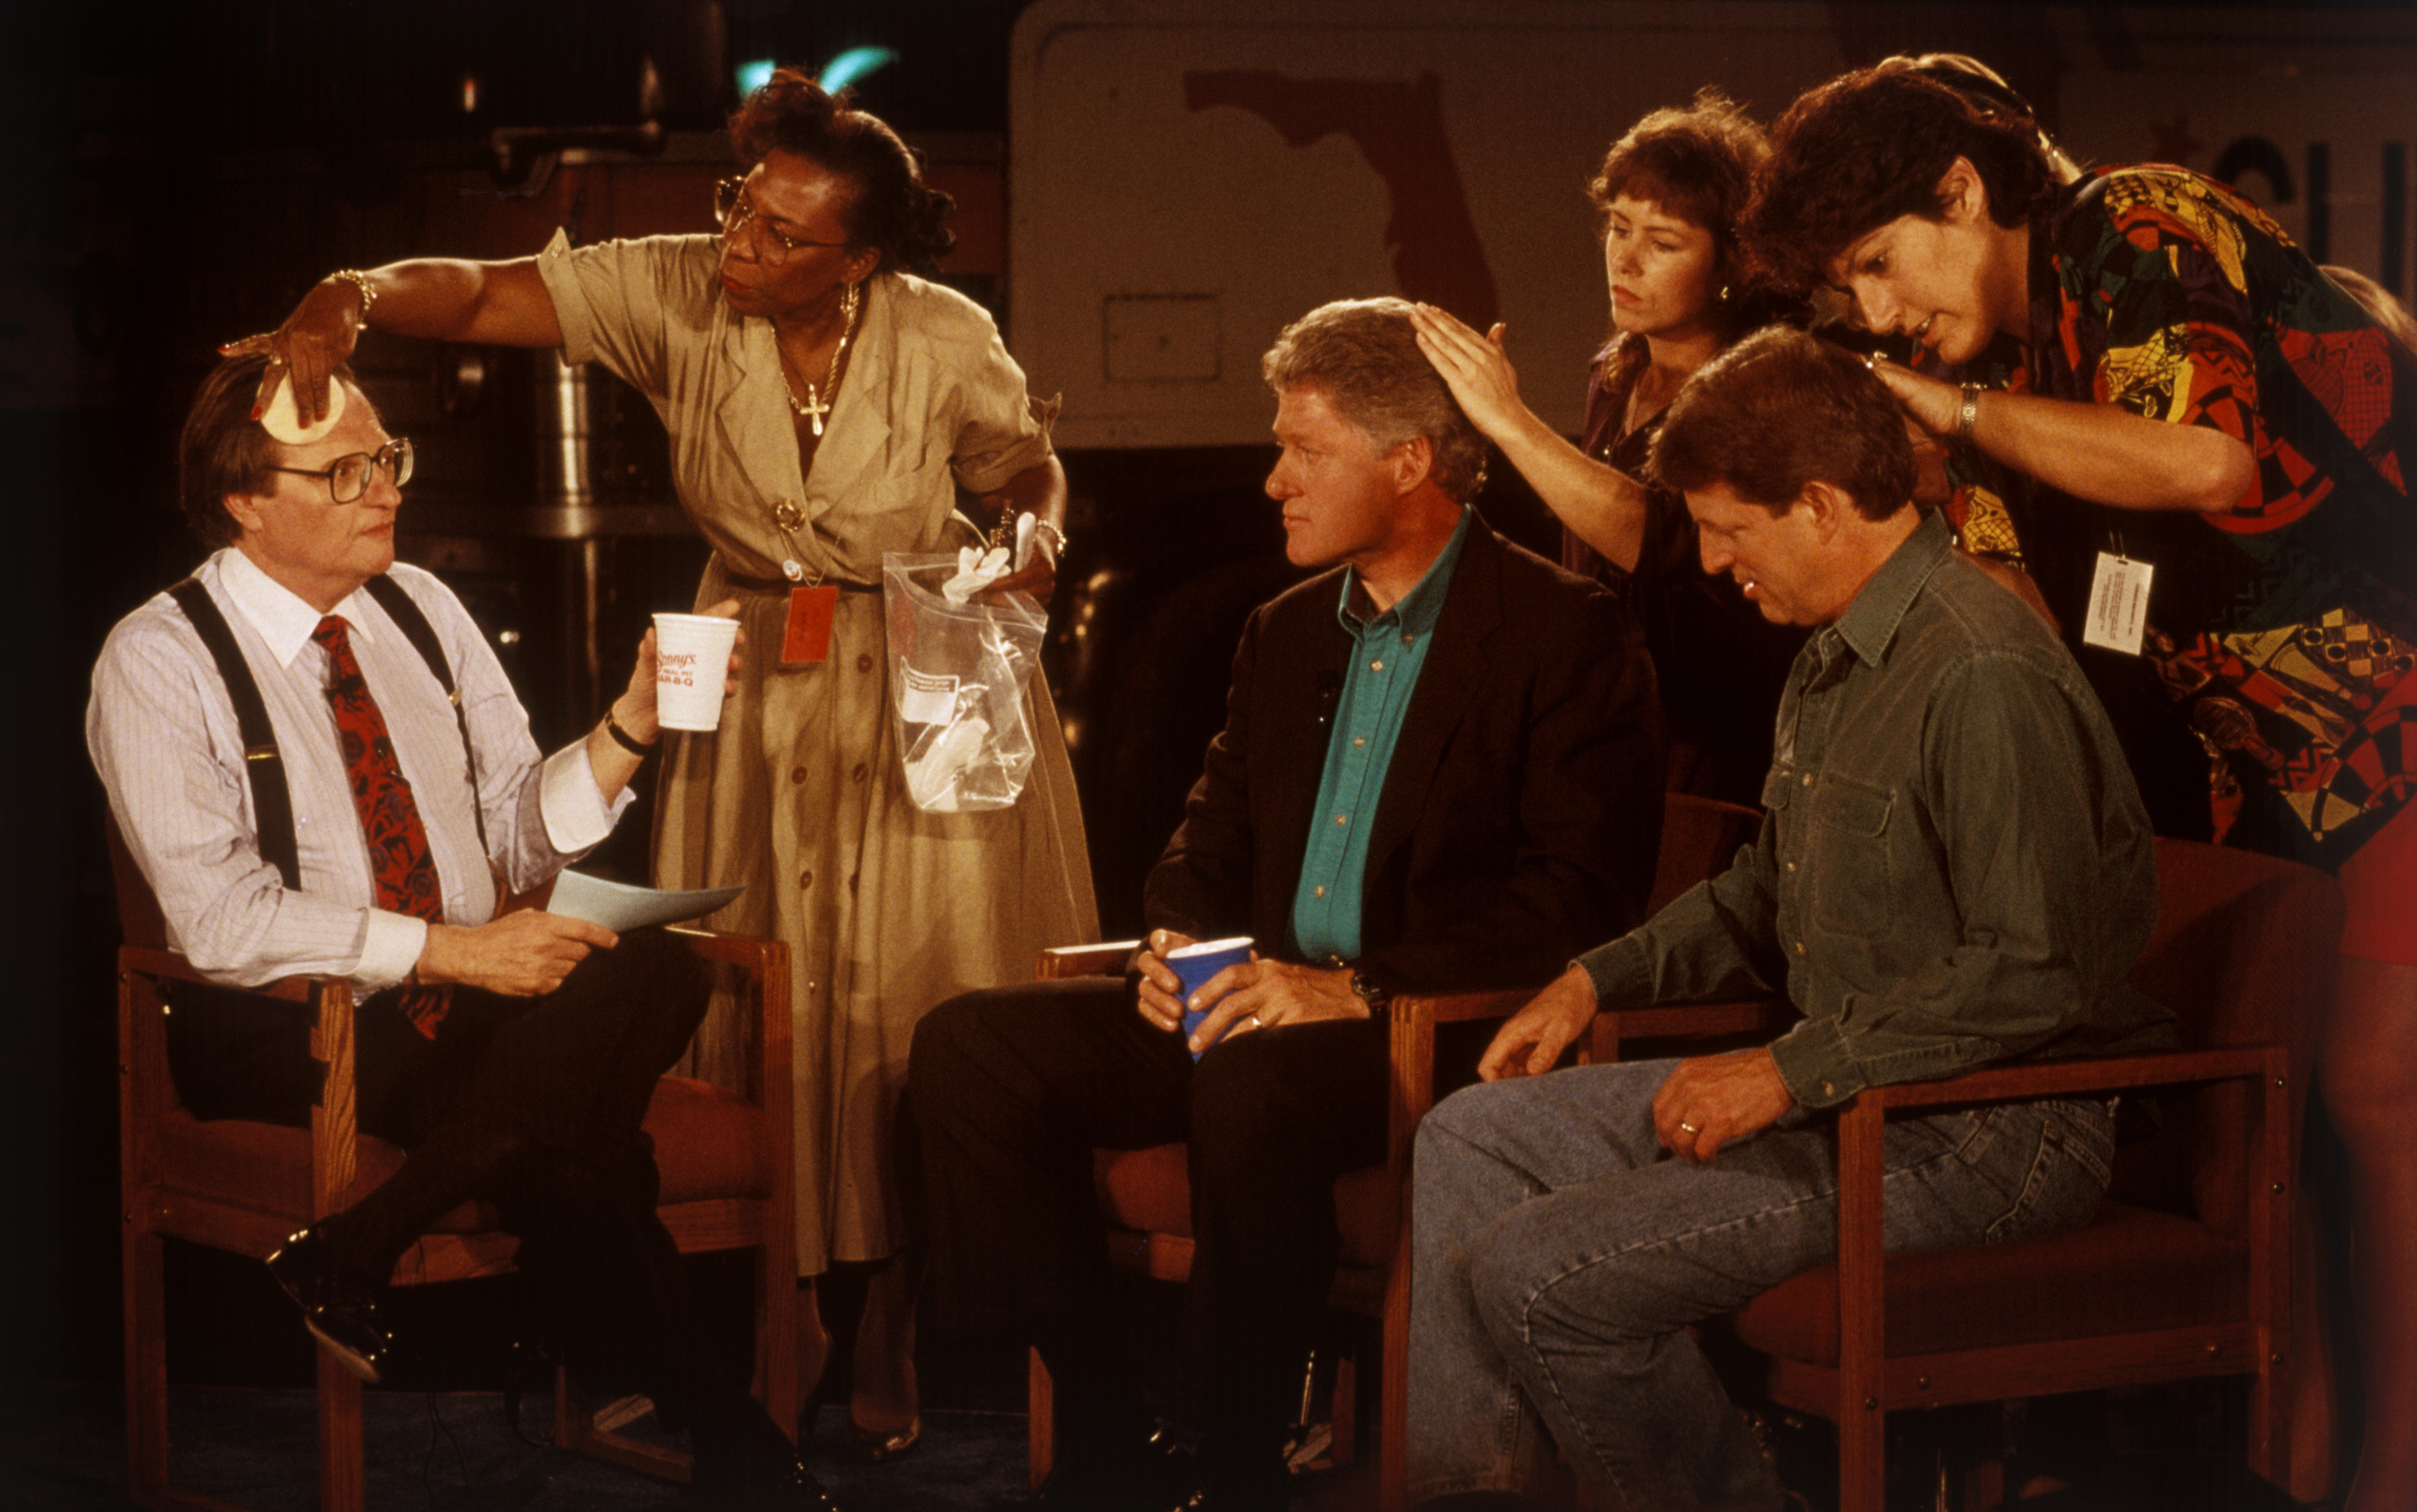 Larry King, Bill Clinton, and Al Gore preparing for a television interview, 1992.